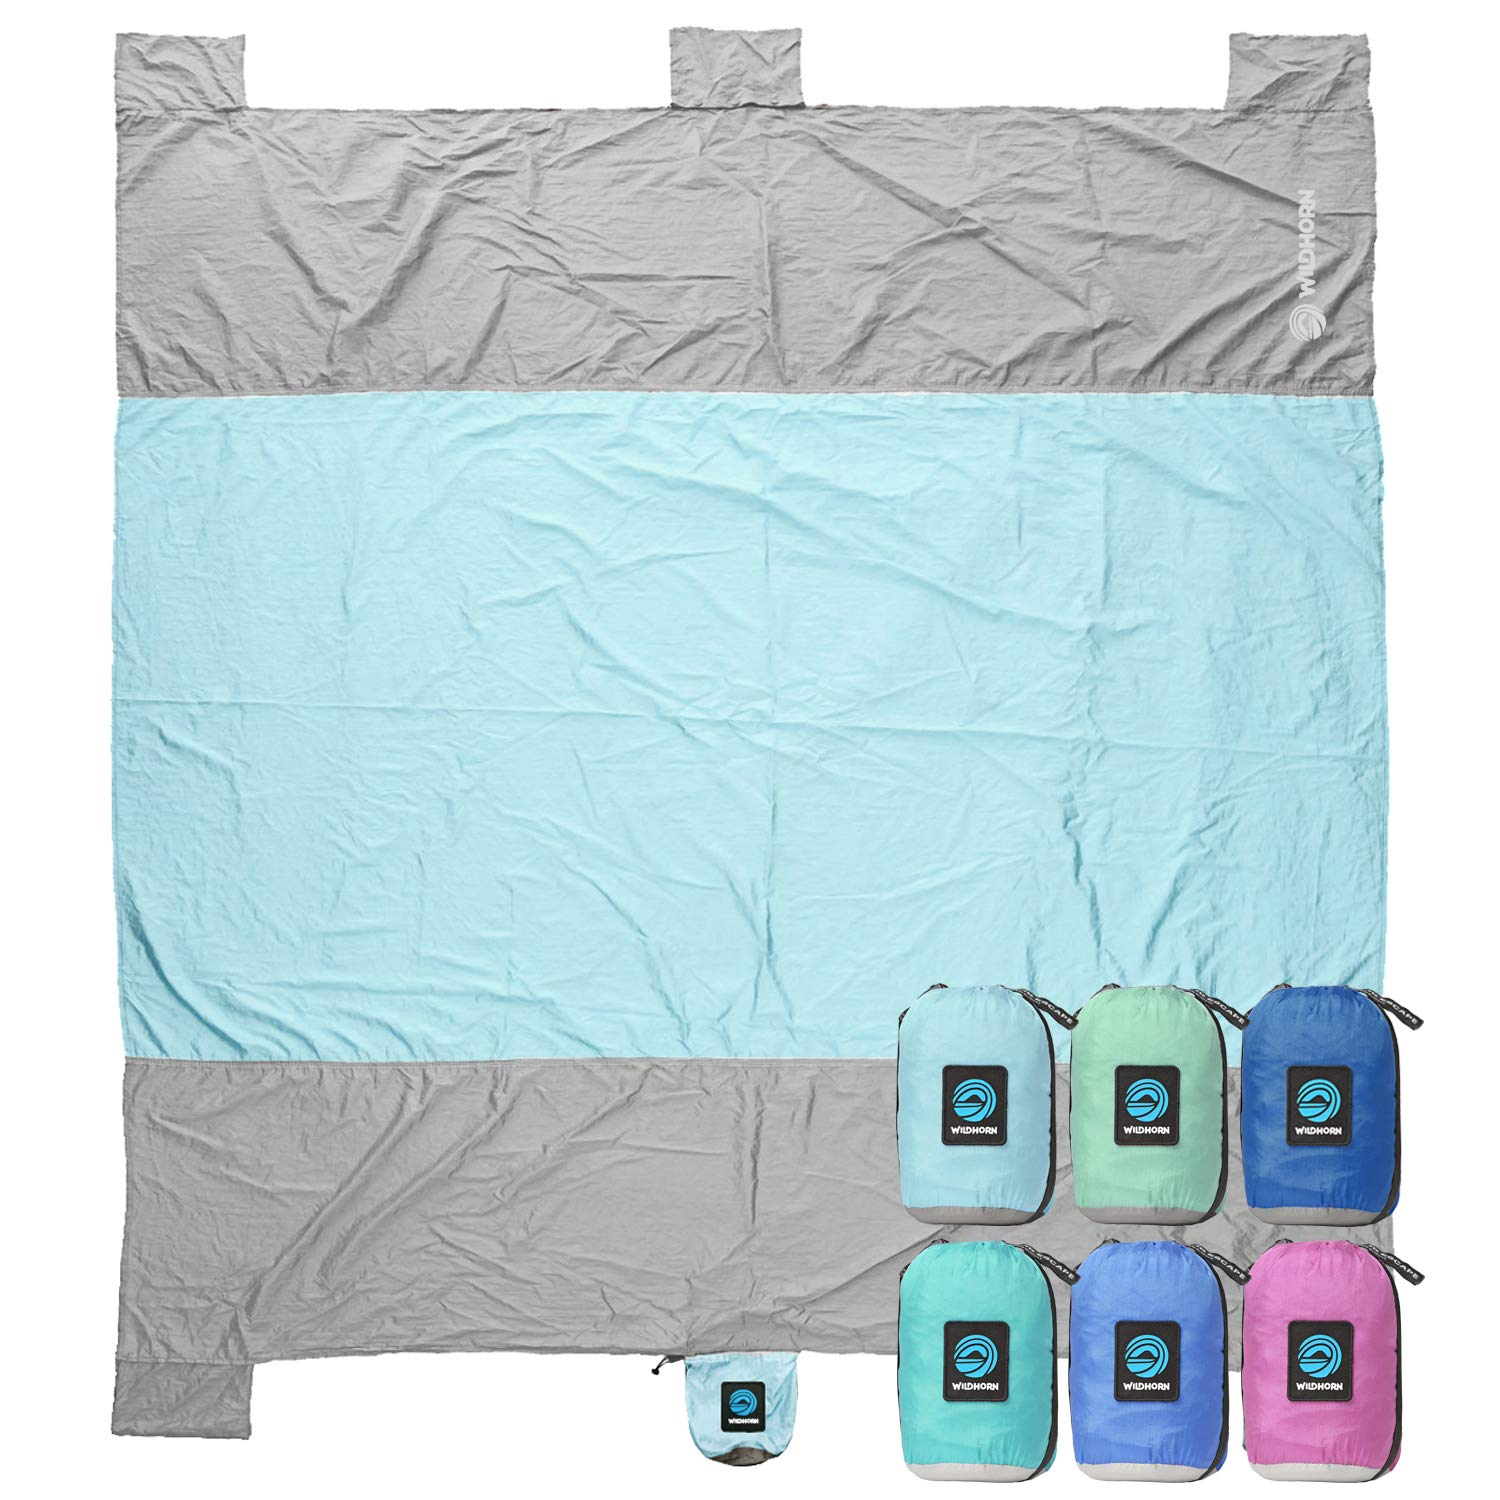 WildHorn Outfitters Blanket Parachute Valuables